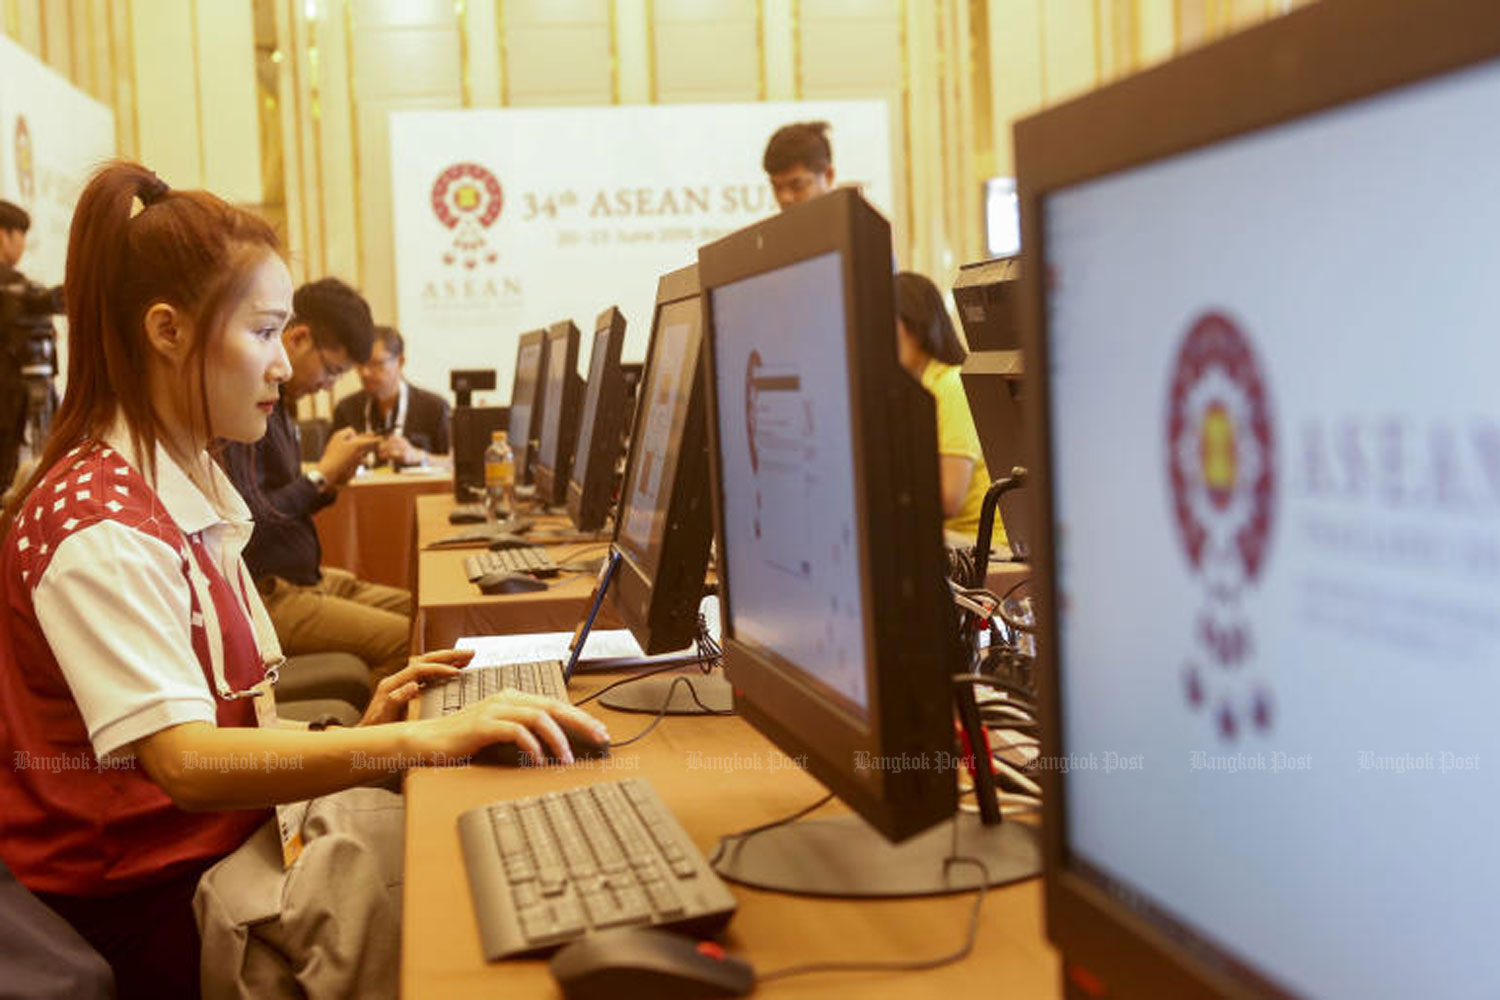 A woman works on a computer at a media centre set up at the Grande Centre Point Hotel in Bangkok for the 34th Asean Summit to be held on Saturday and Sunday. (Photo by Pattarapong Chatpattarasill)